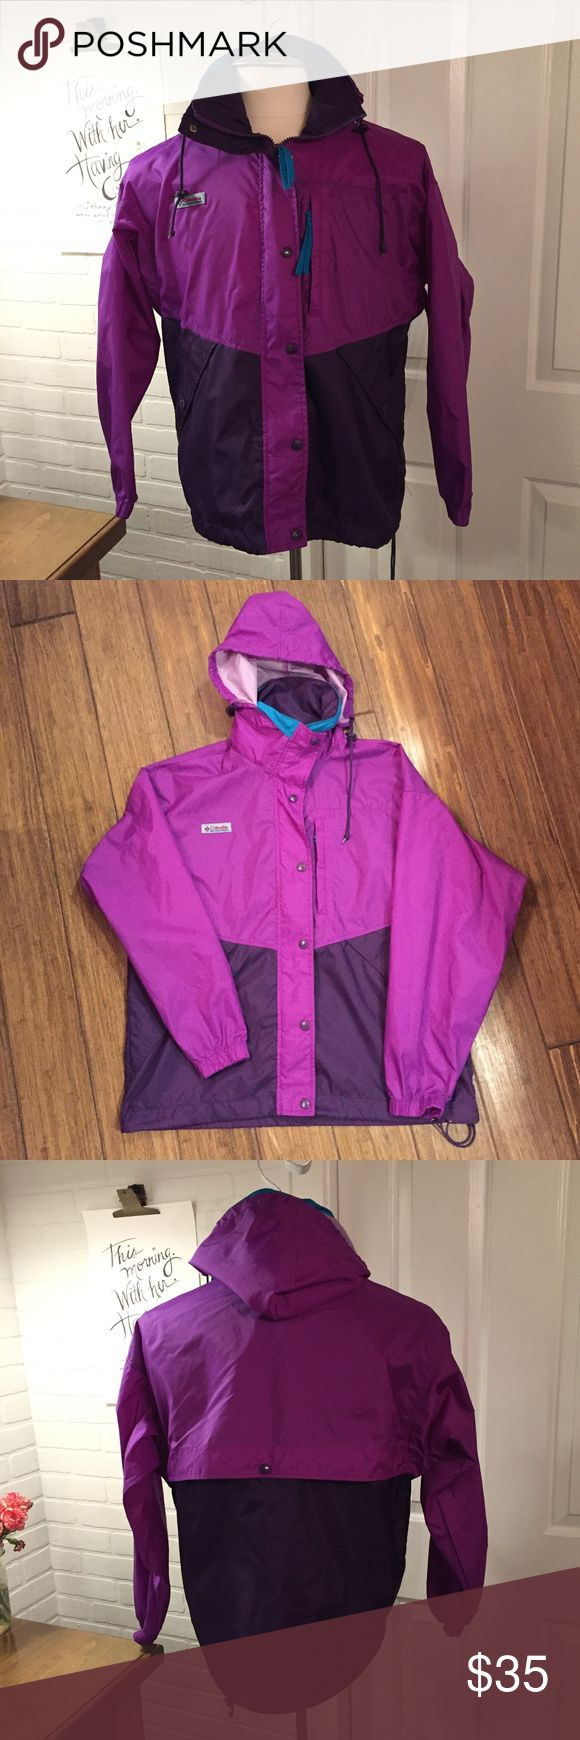 Columbia Zip Up Windbreaker Jacket Womens Medium Brand - Columbia  Style - Zip Up Windbreaker Jacket  Size - Medium  Color - Purple  Great Pre-Owned Condition Columbia Jackets & Coats